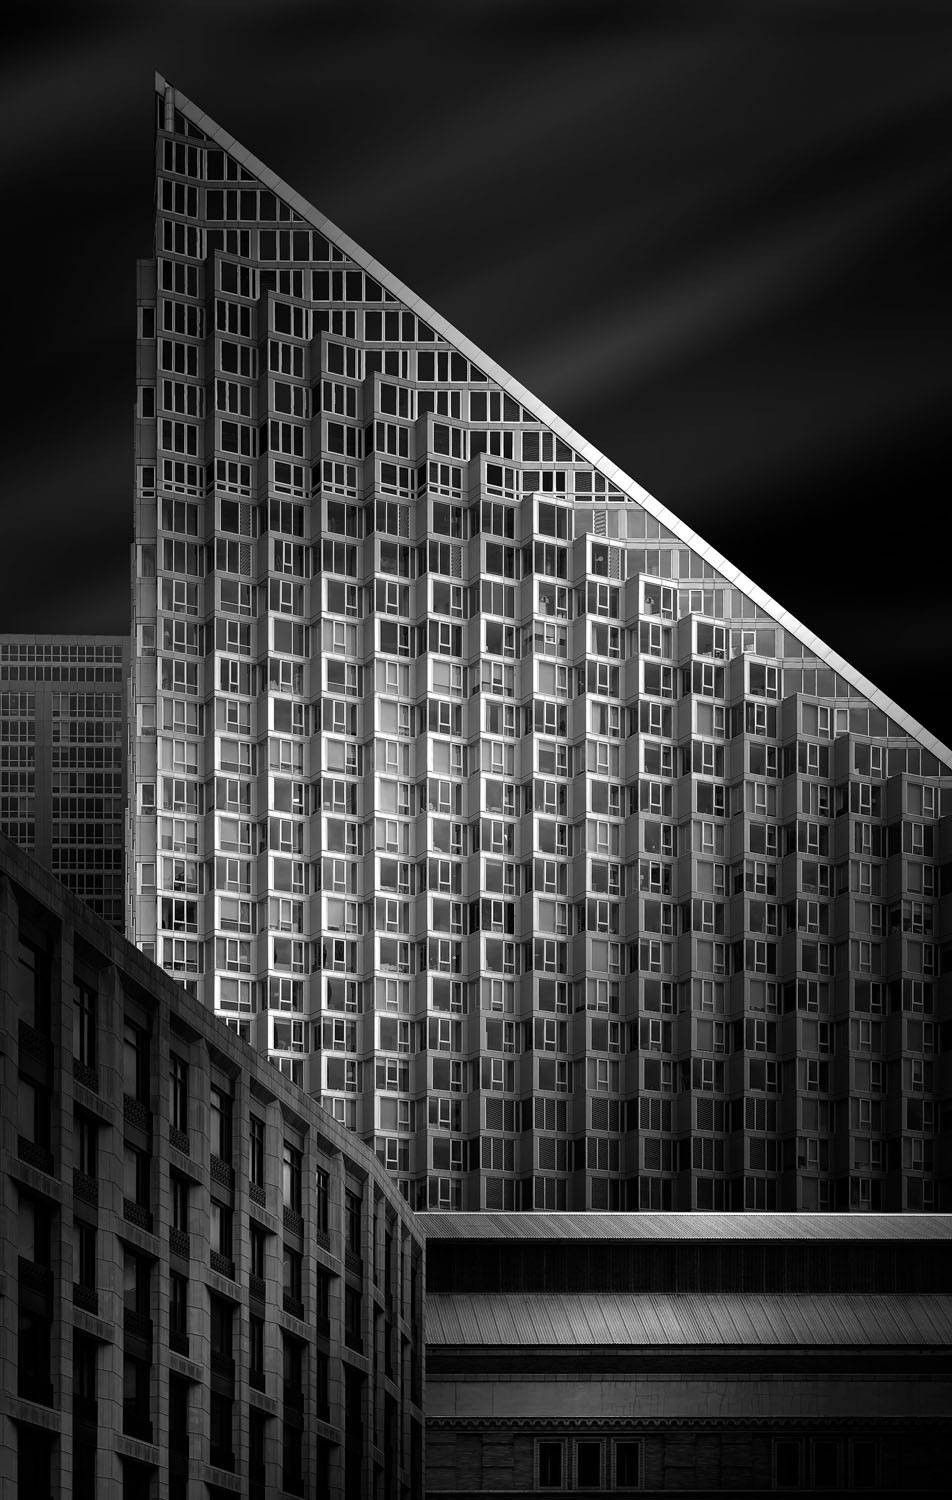 Architectural Photography Contest